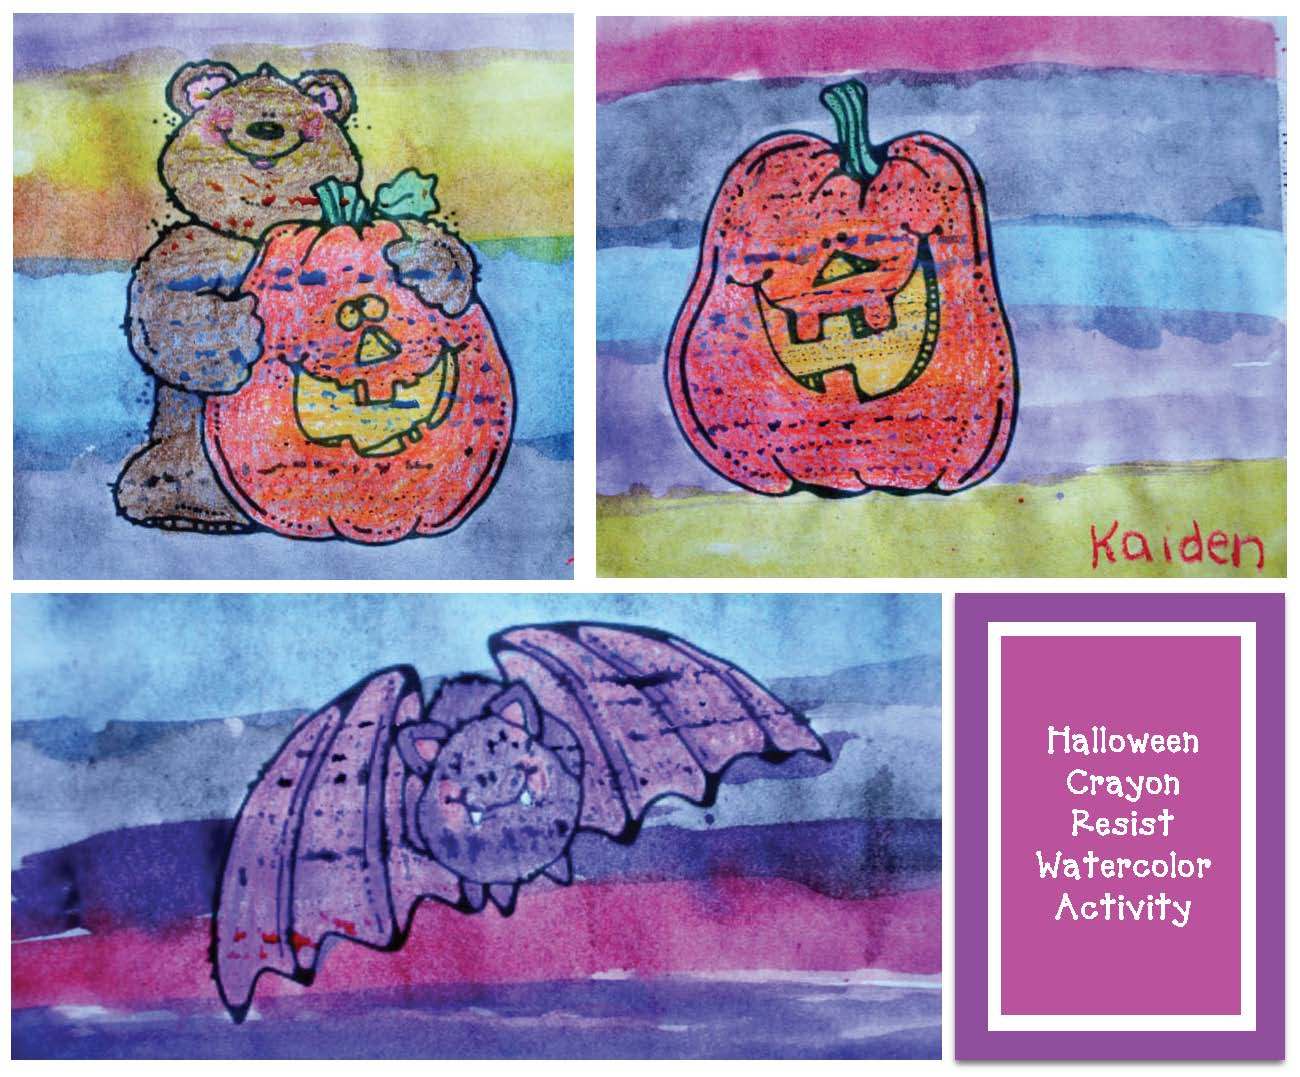 Halloween crayon resist watercolors, halloween bulletin board ideas, halloween crafts, halloween party day activities